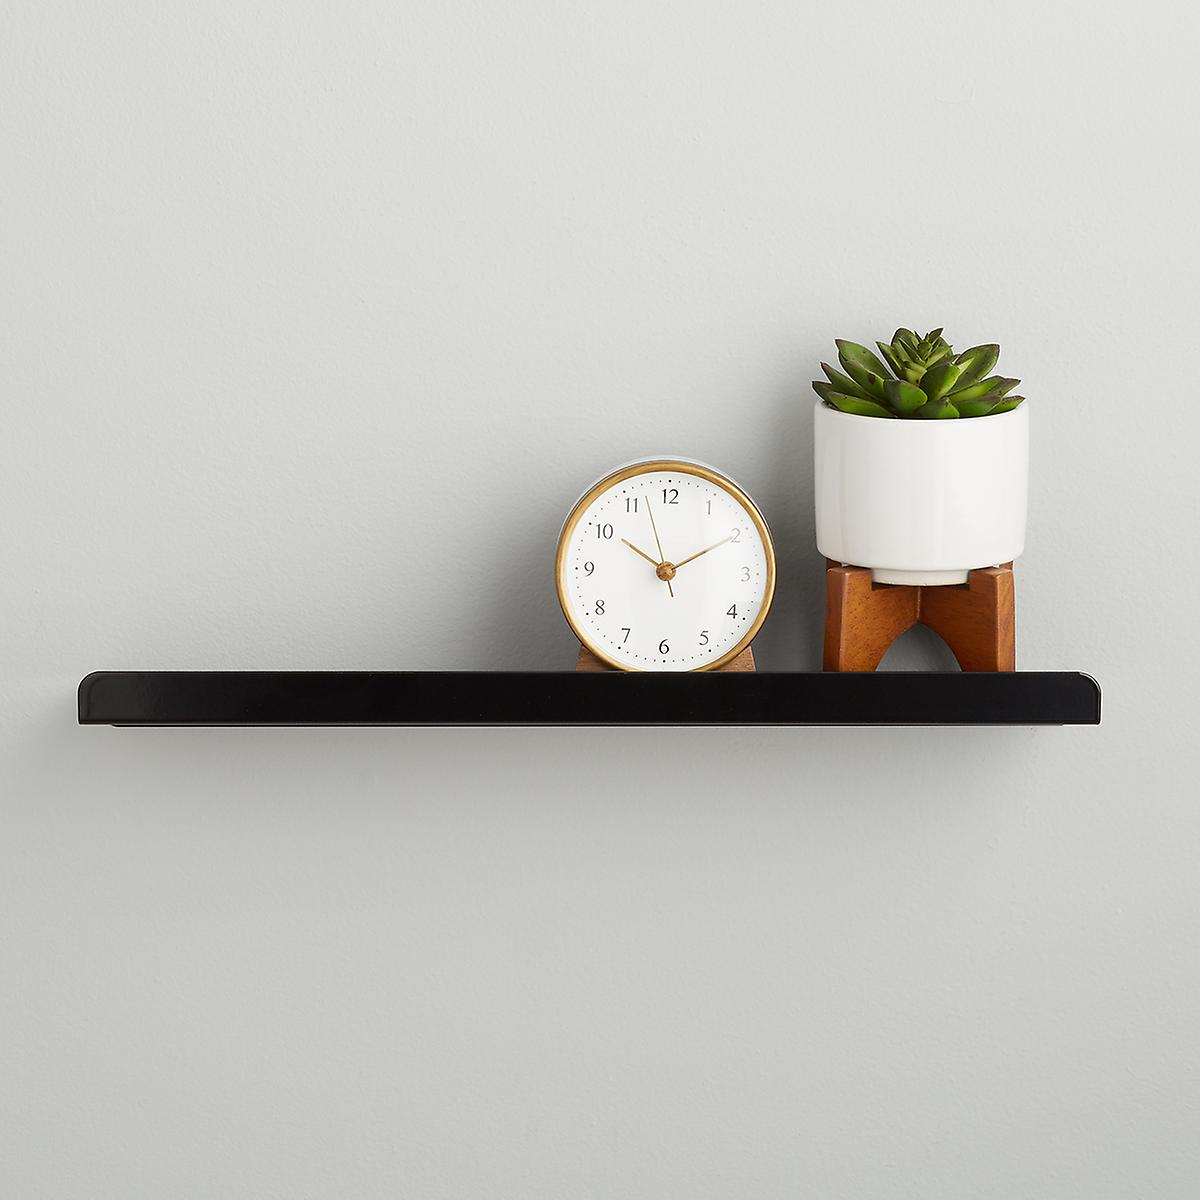 ledge shelves umbra simple wall shelf the container floating pine shelving unit ikea lack sizes narrow bathroom storage double sink cabinet ideas fireplace mantle without metal